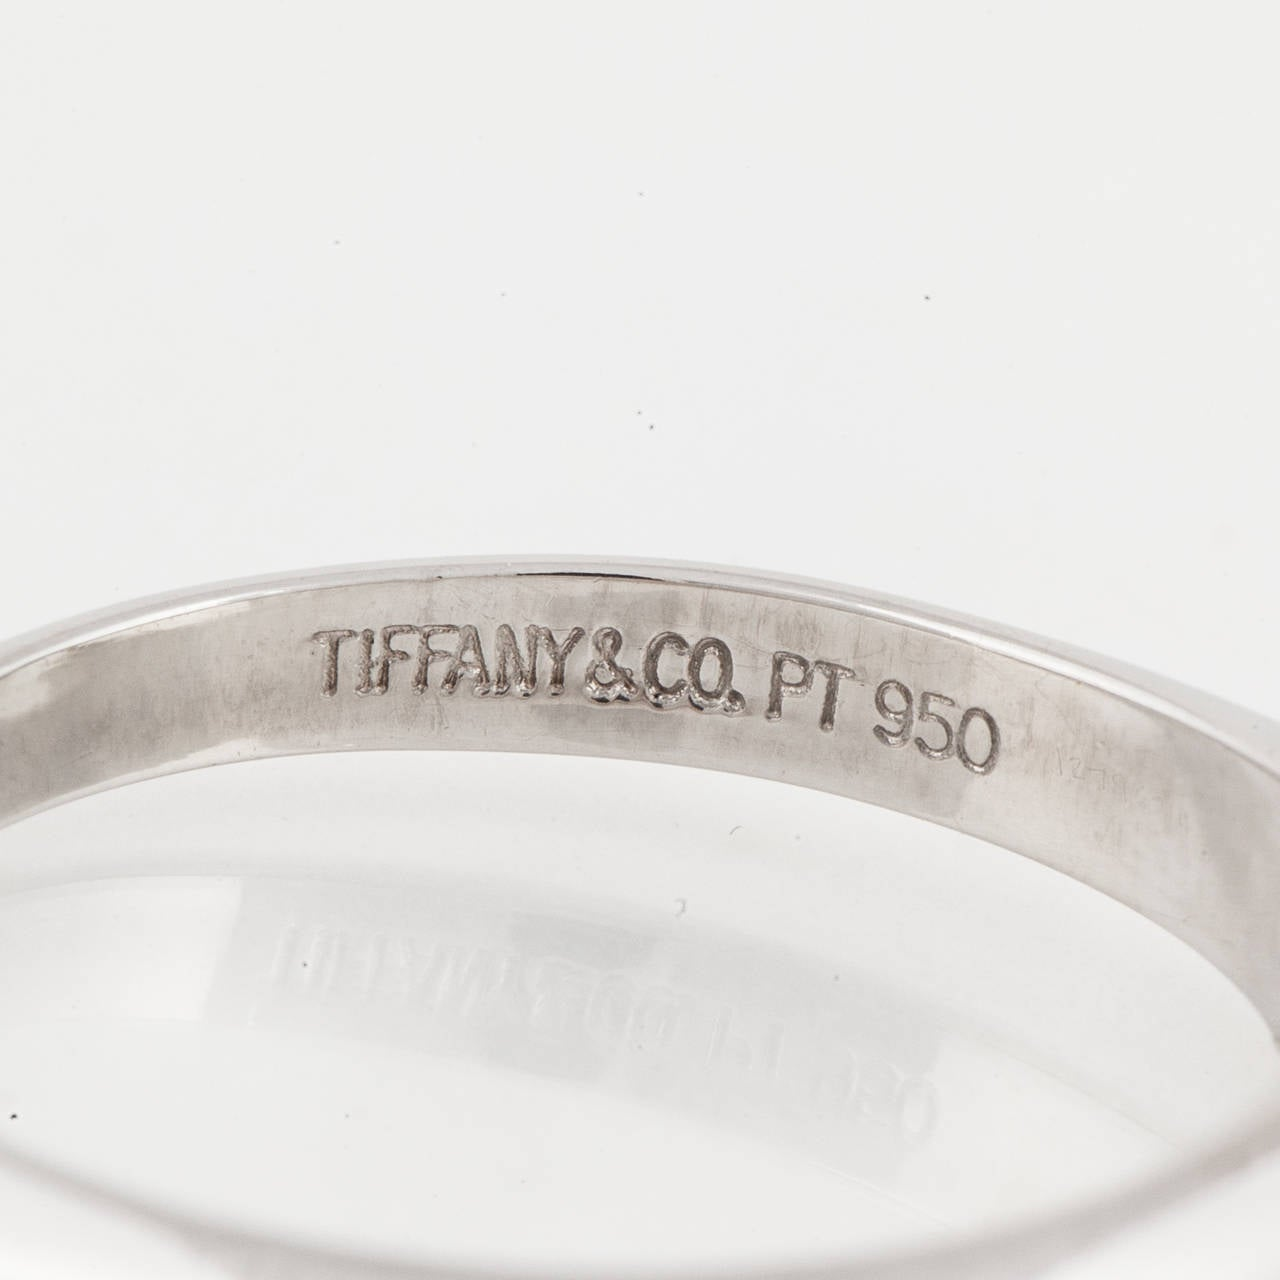 Tiffany & Co. Diamond Platinum Solitare Ring 5